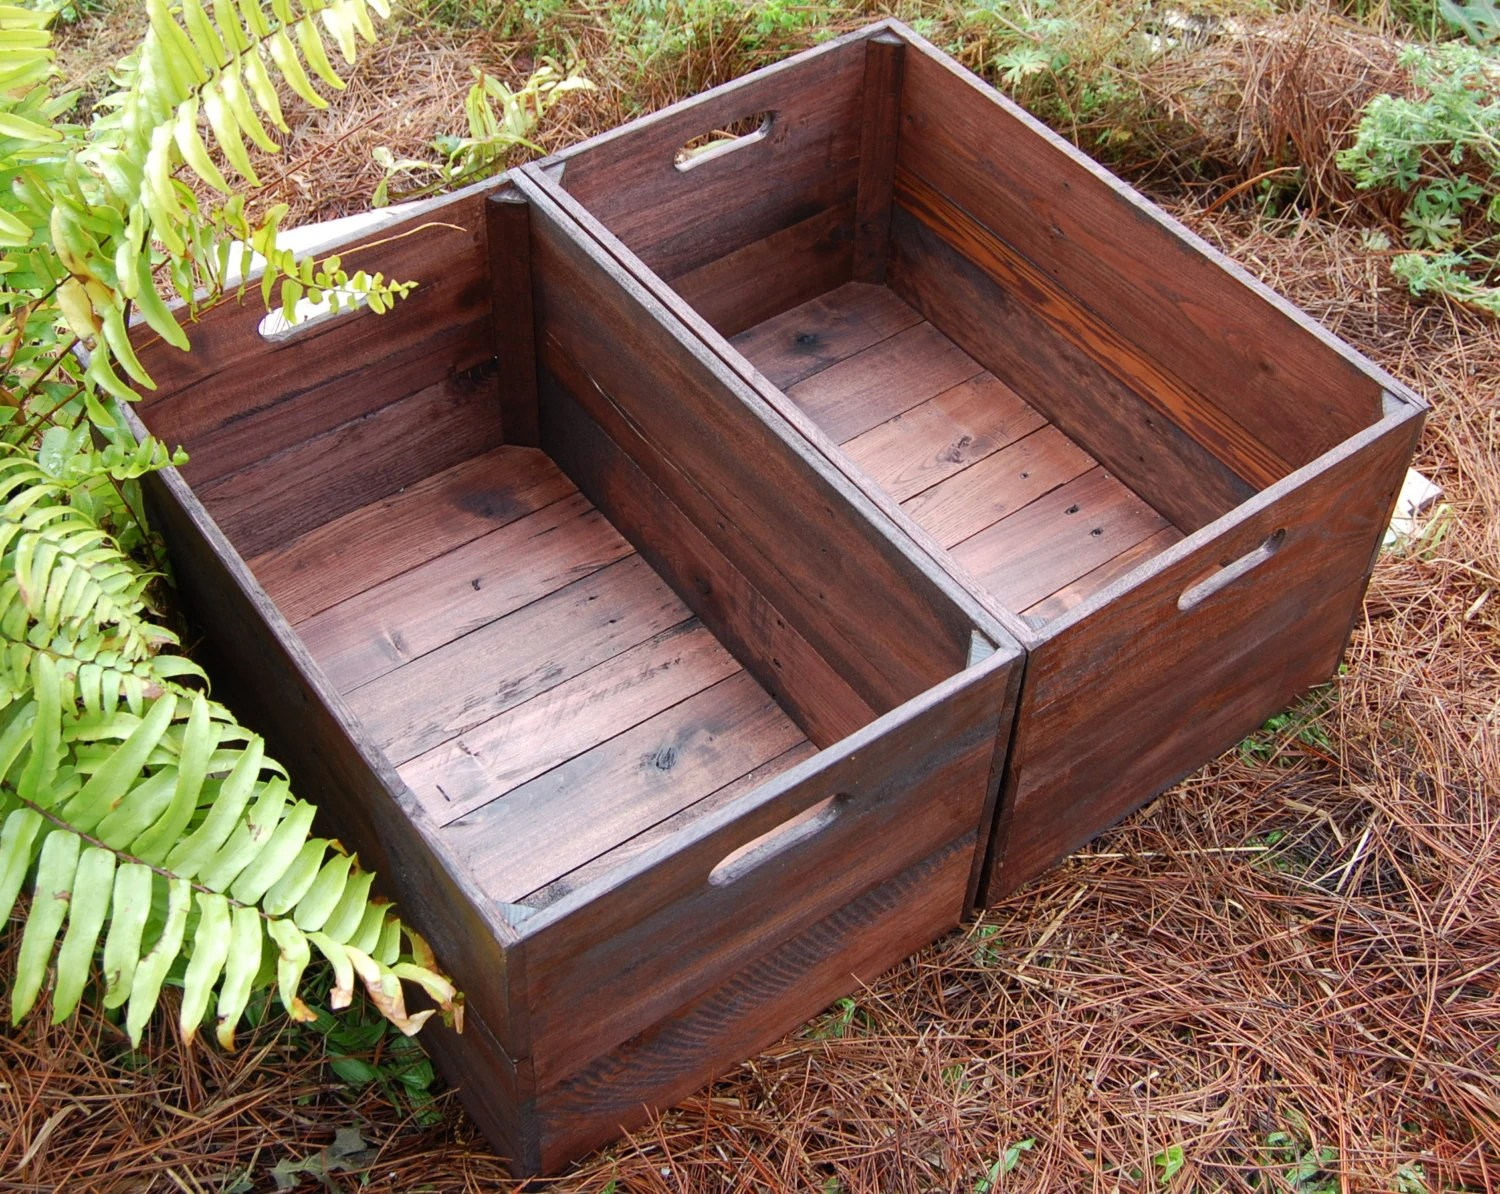 Fruit Bins For Sale Set Of Large Looney Bin Crates Apple Crates Wooden Crates